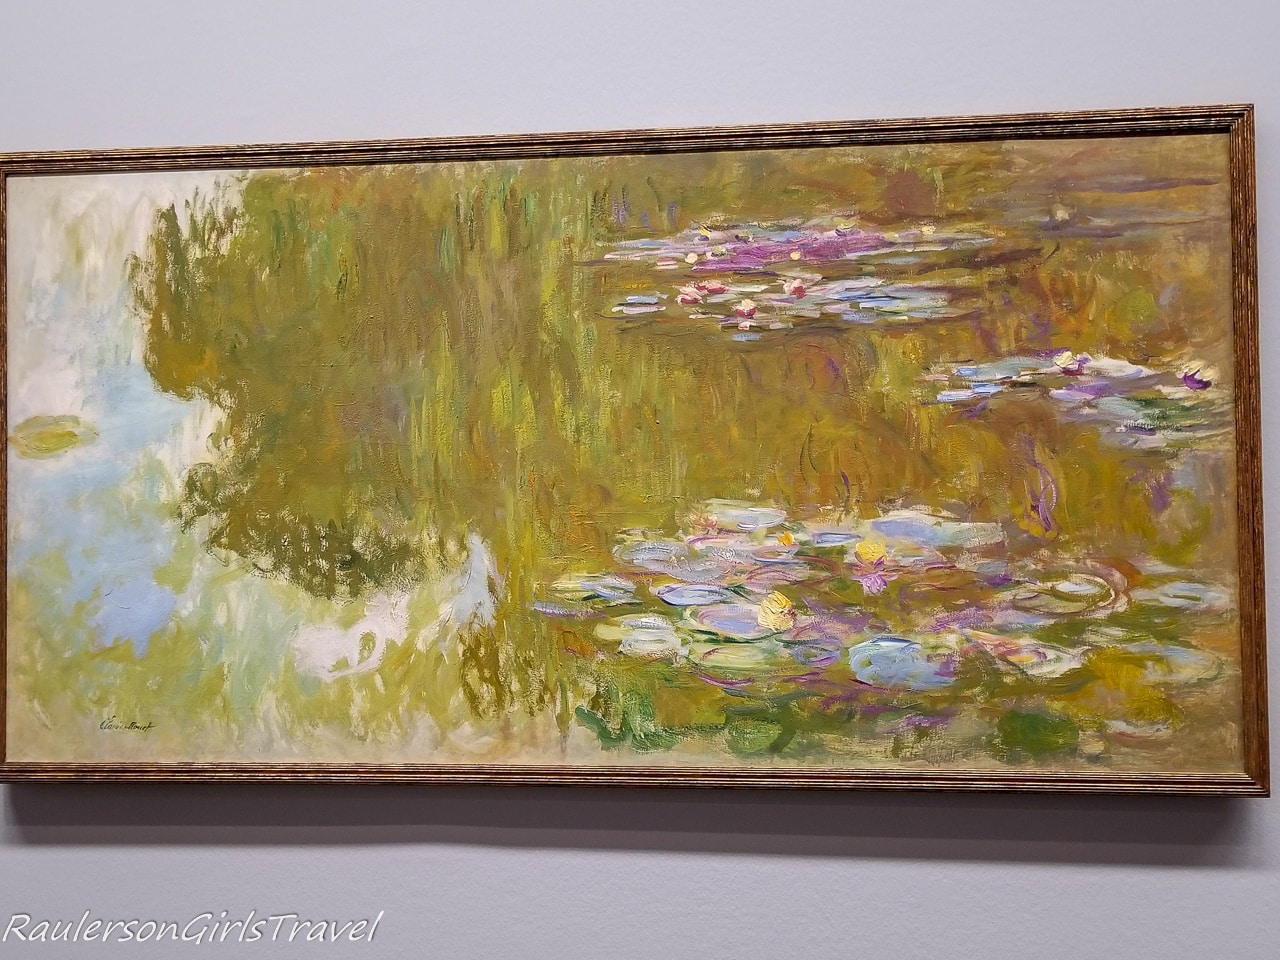 Monet - The Water Lily Pond